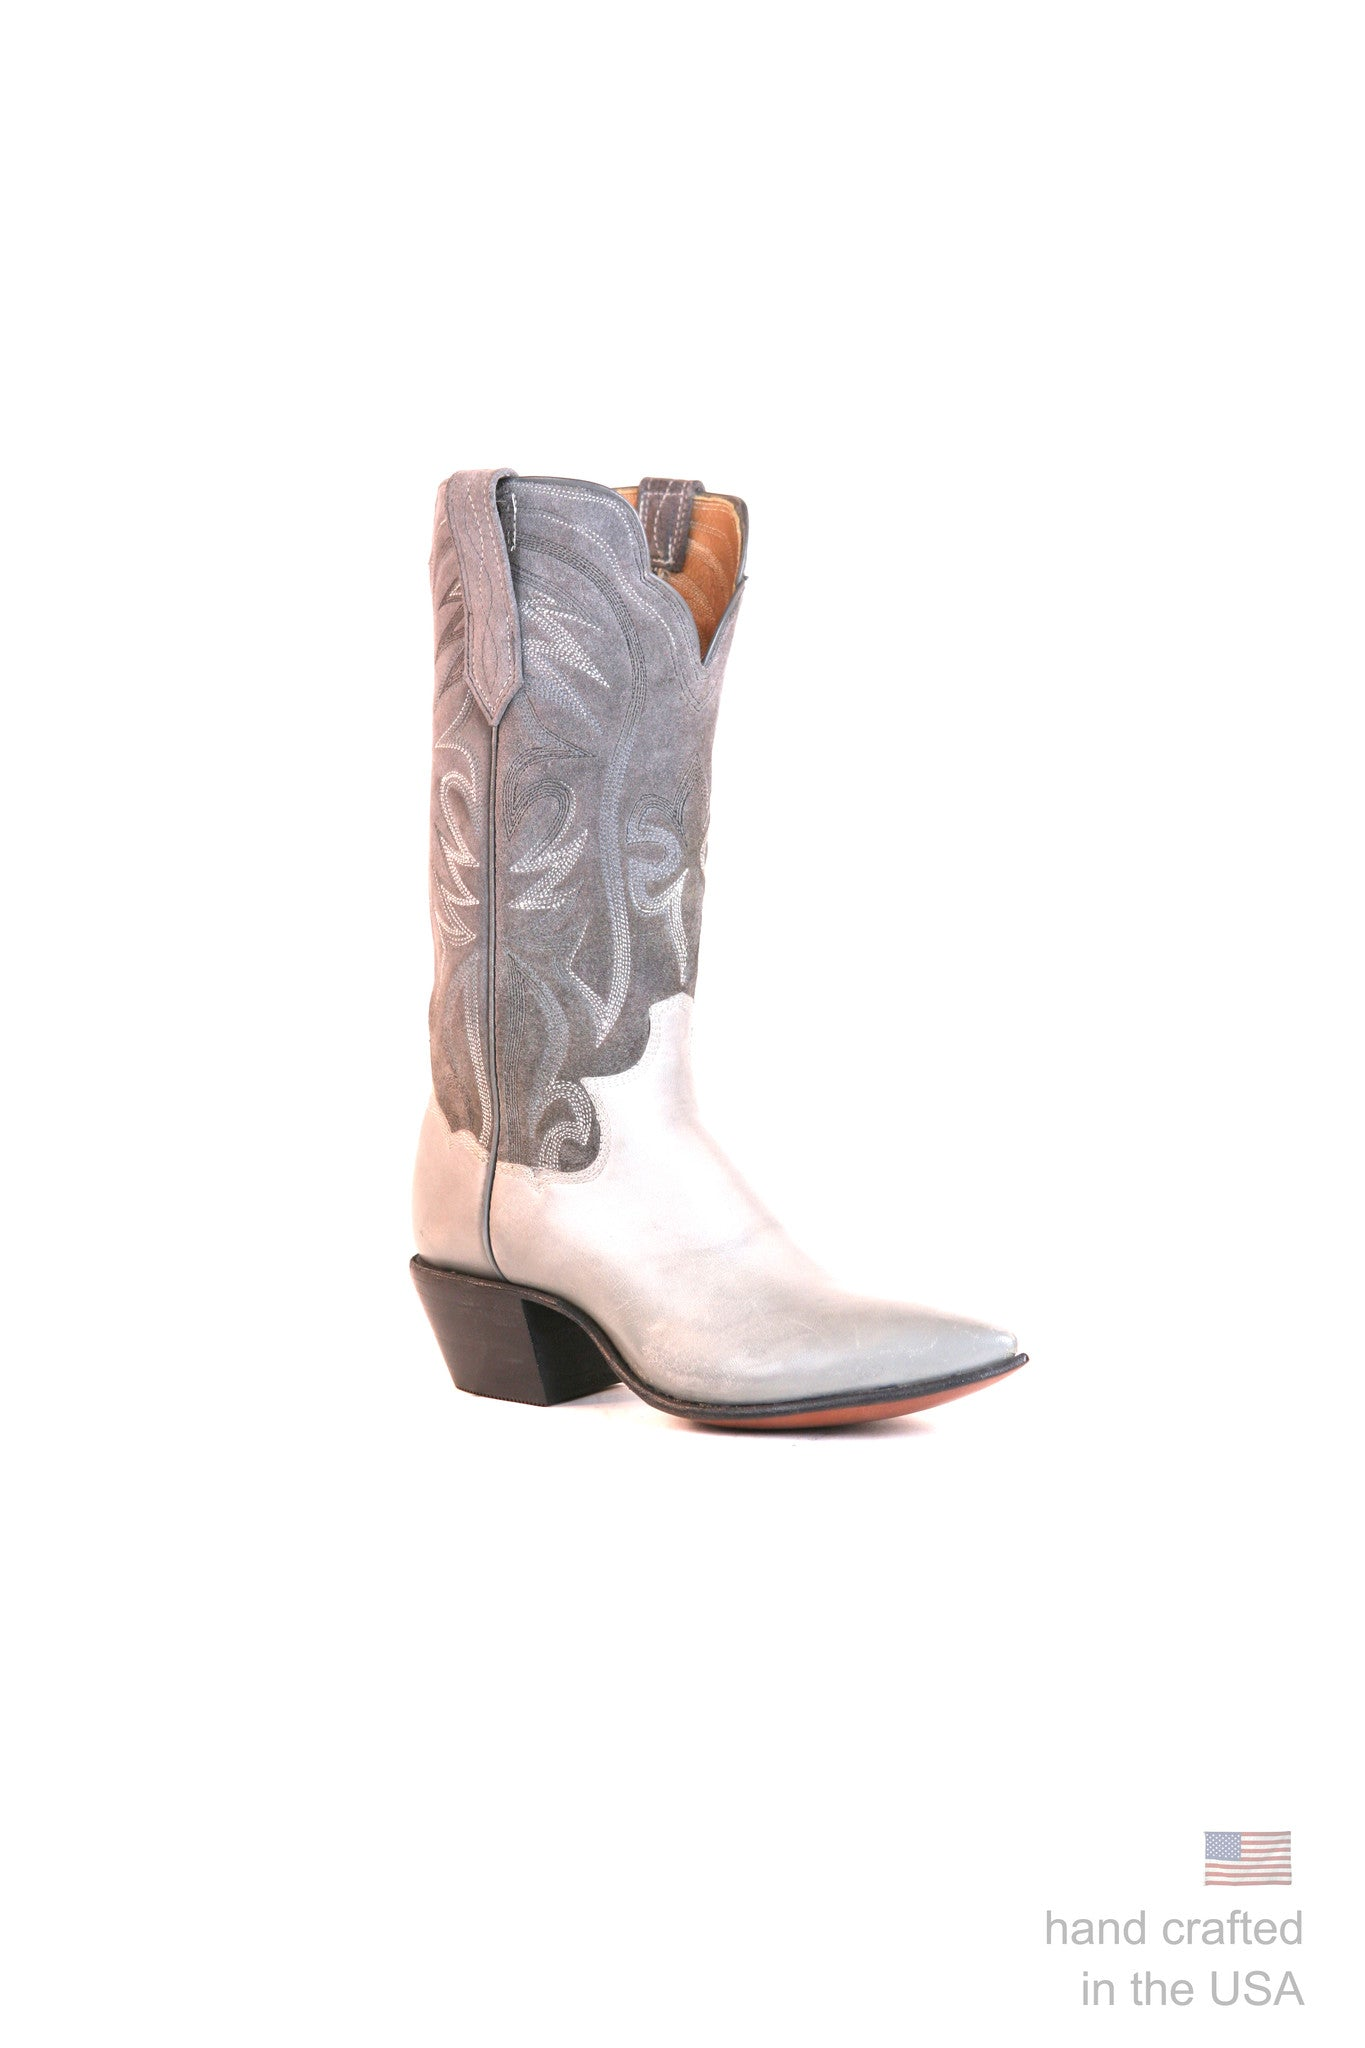 Singles: Boot 0082: Size 6B